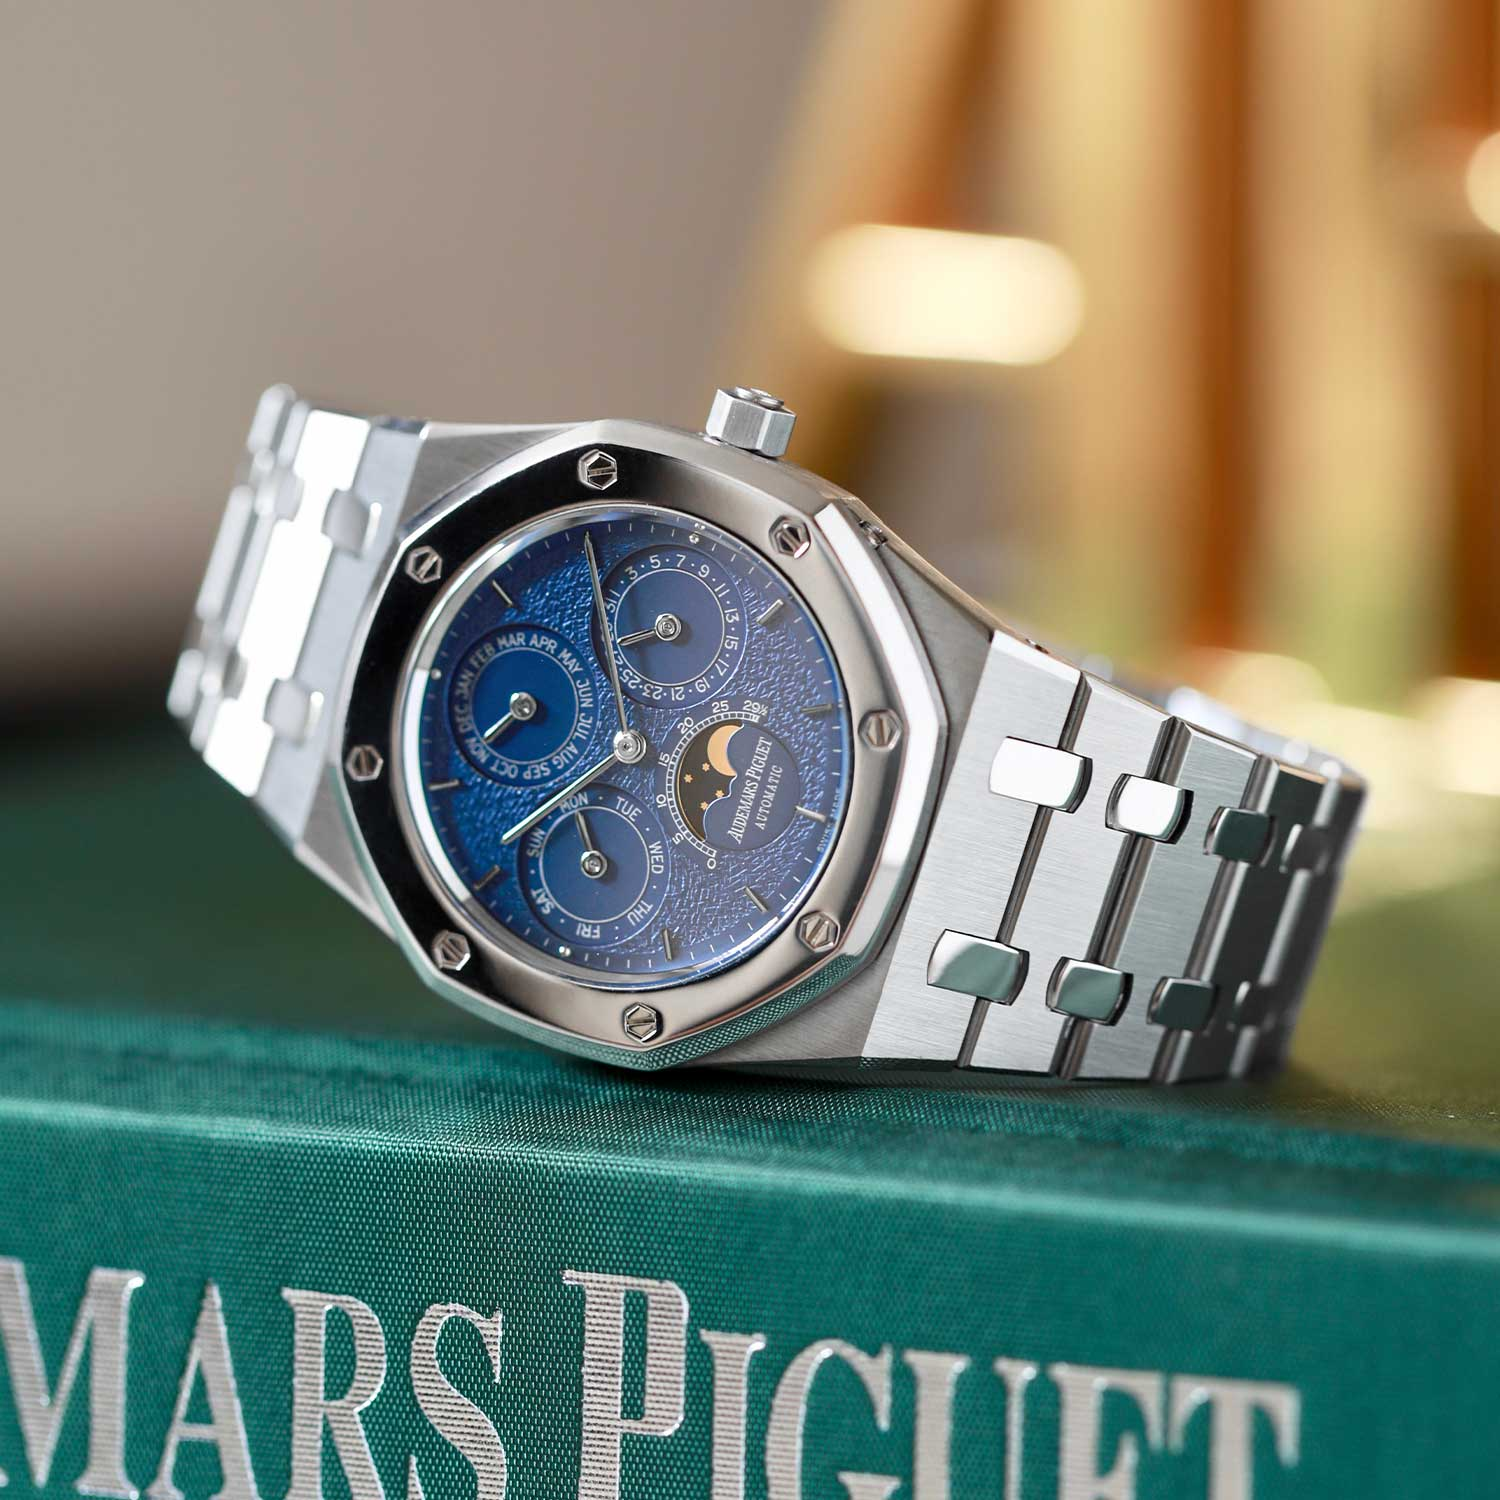 """The Royal Oak Perpetual Calendar ref. 25686SP, in steel and platinum with the ever so desirable """"Tuscan"""" dial; the watch seen here is presently part of the Pygmalion Gallery's private collection (Image: Photo and watch, property of Pygmalion Gallery)"""